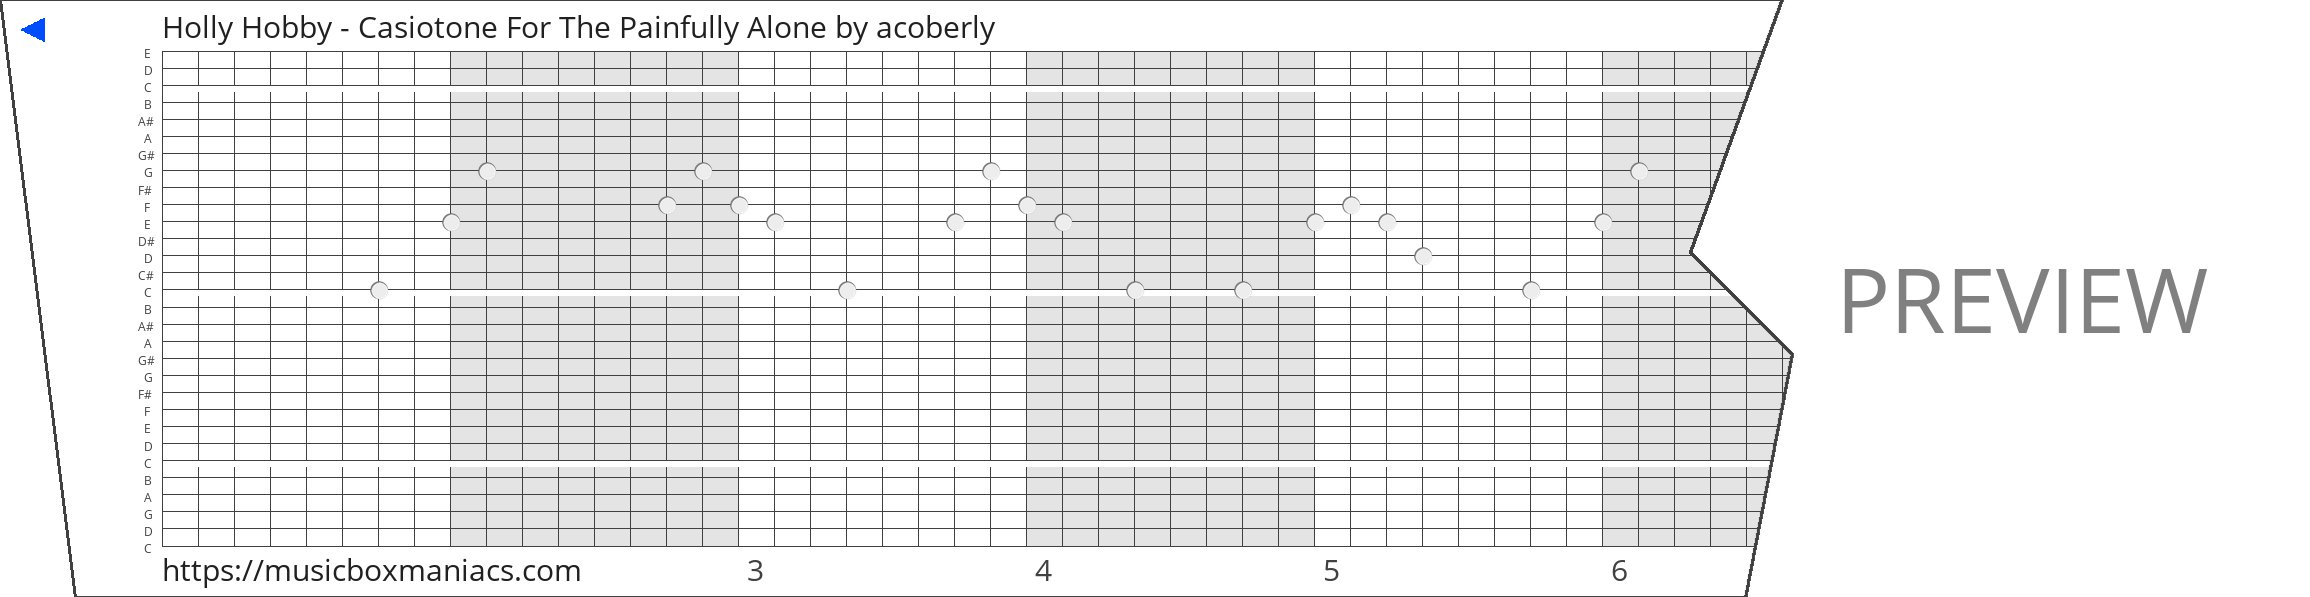 Holly Hobby - Casiotone For The Painfully Alone 30 note music box paper strip